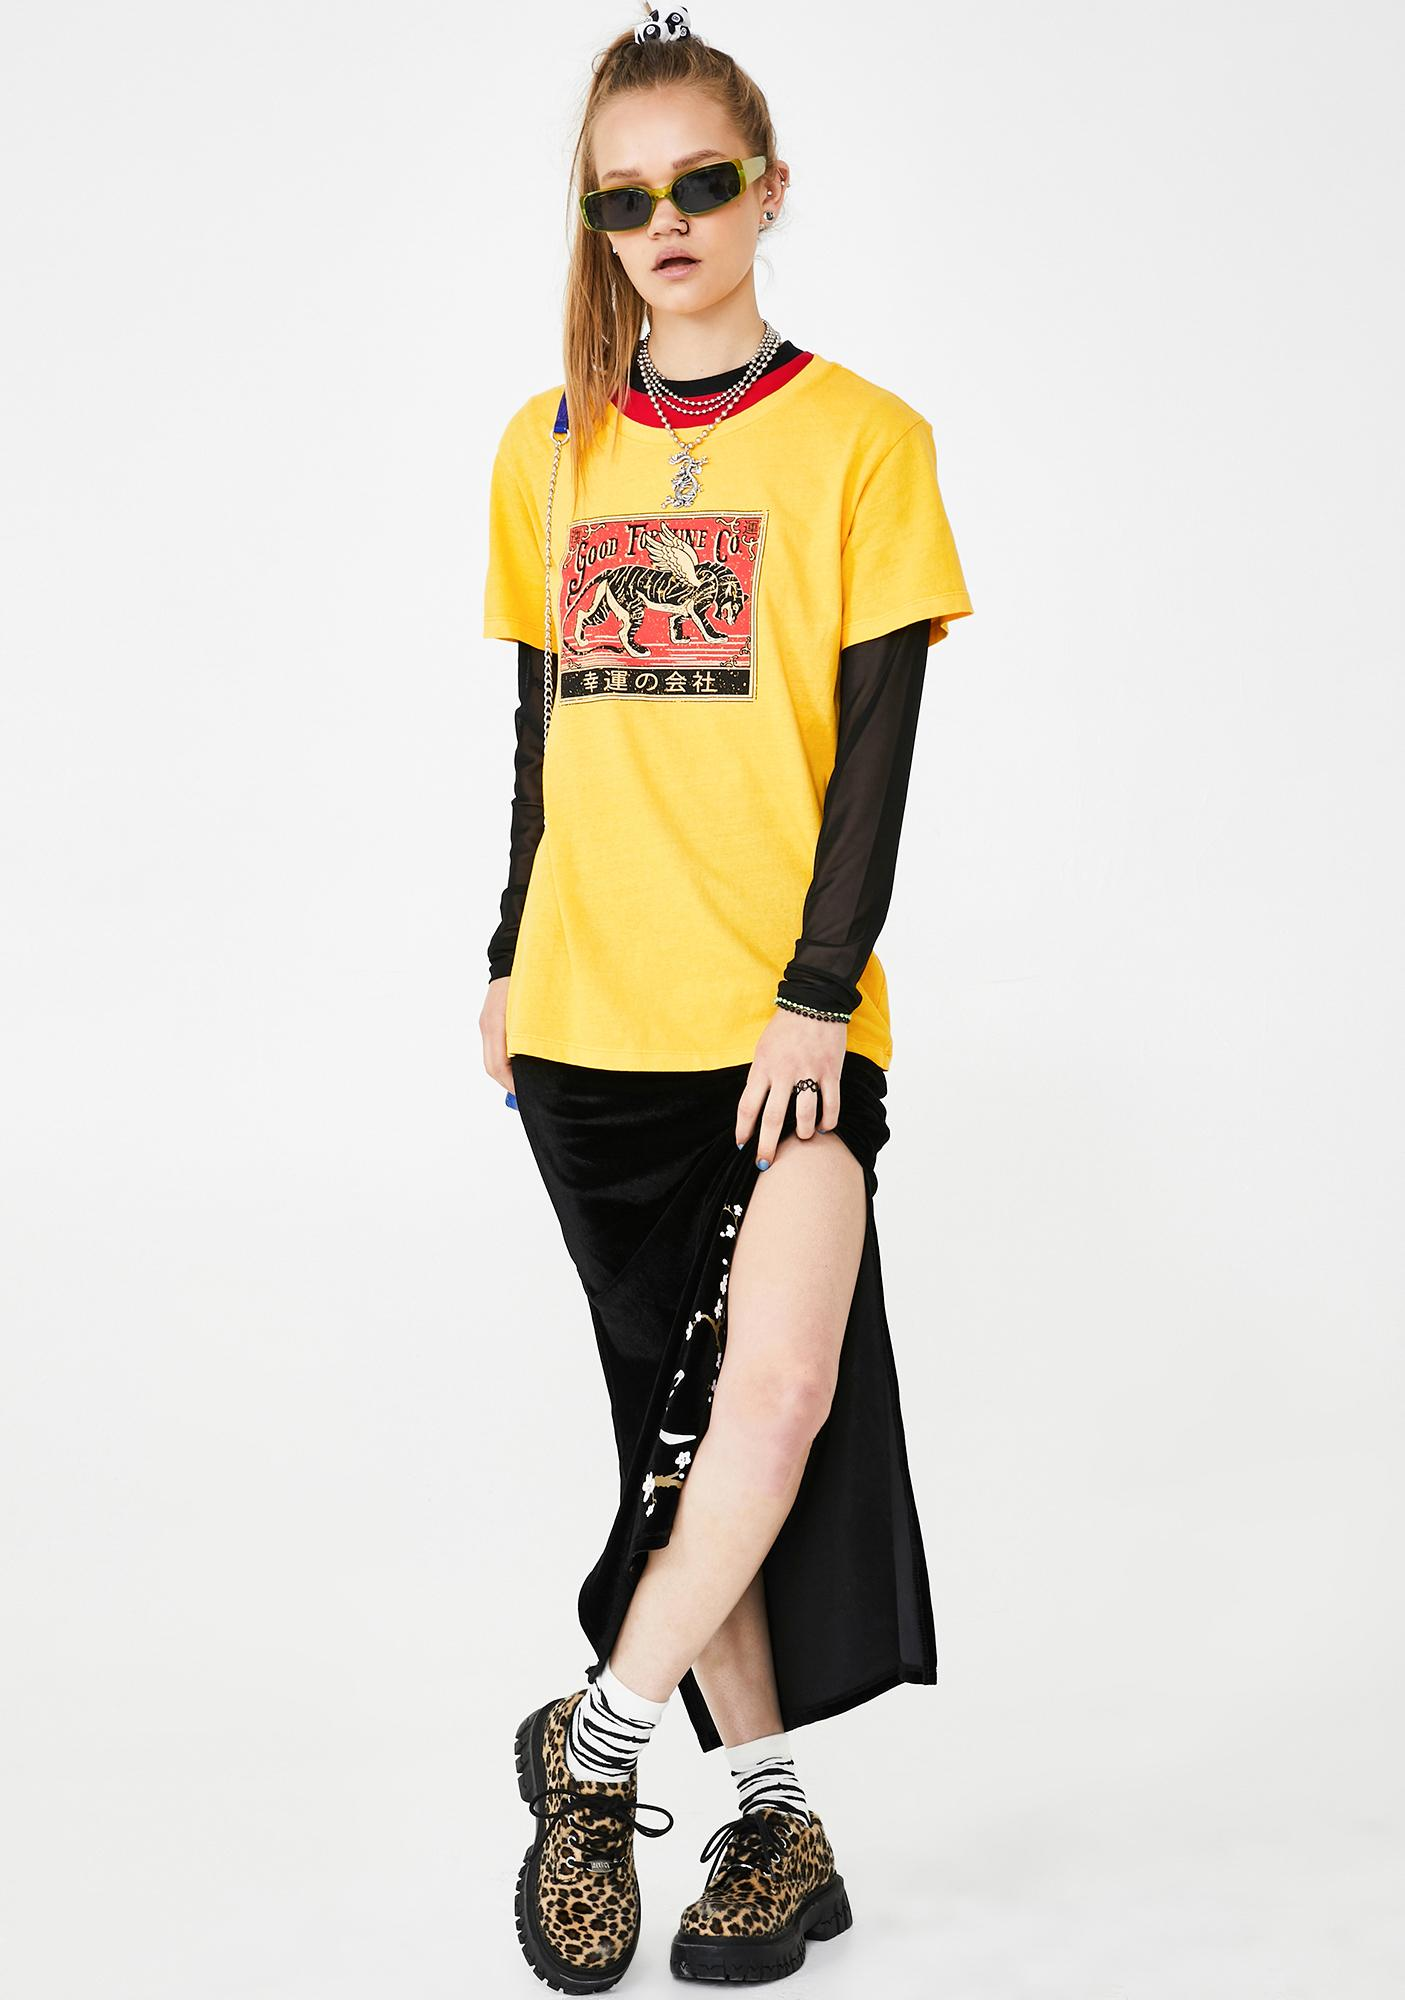 Desert Dreamer Good Fortune Co. Graphic Tee